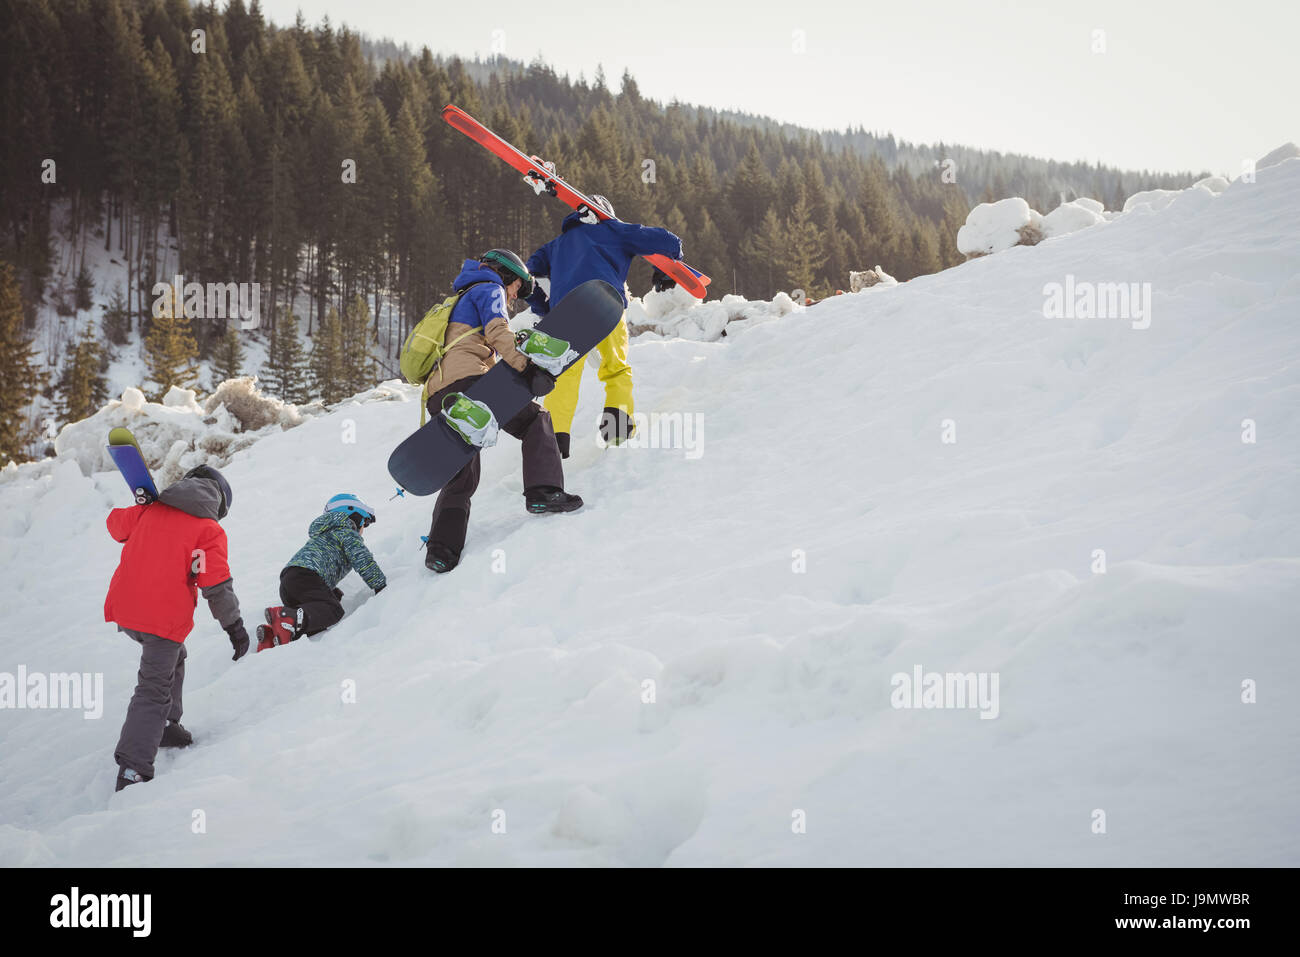 Family in skiwear climbing snowy alps during winter - Stock Image